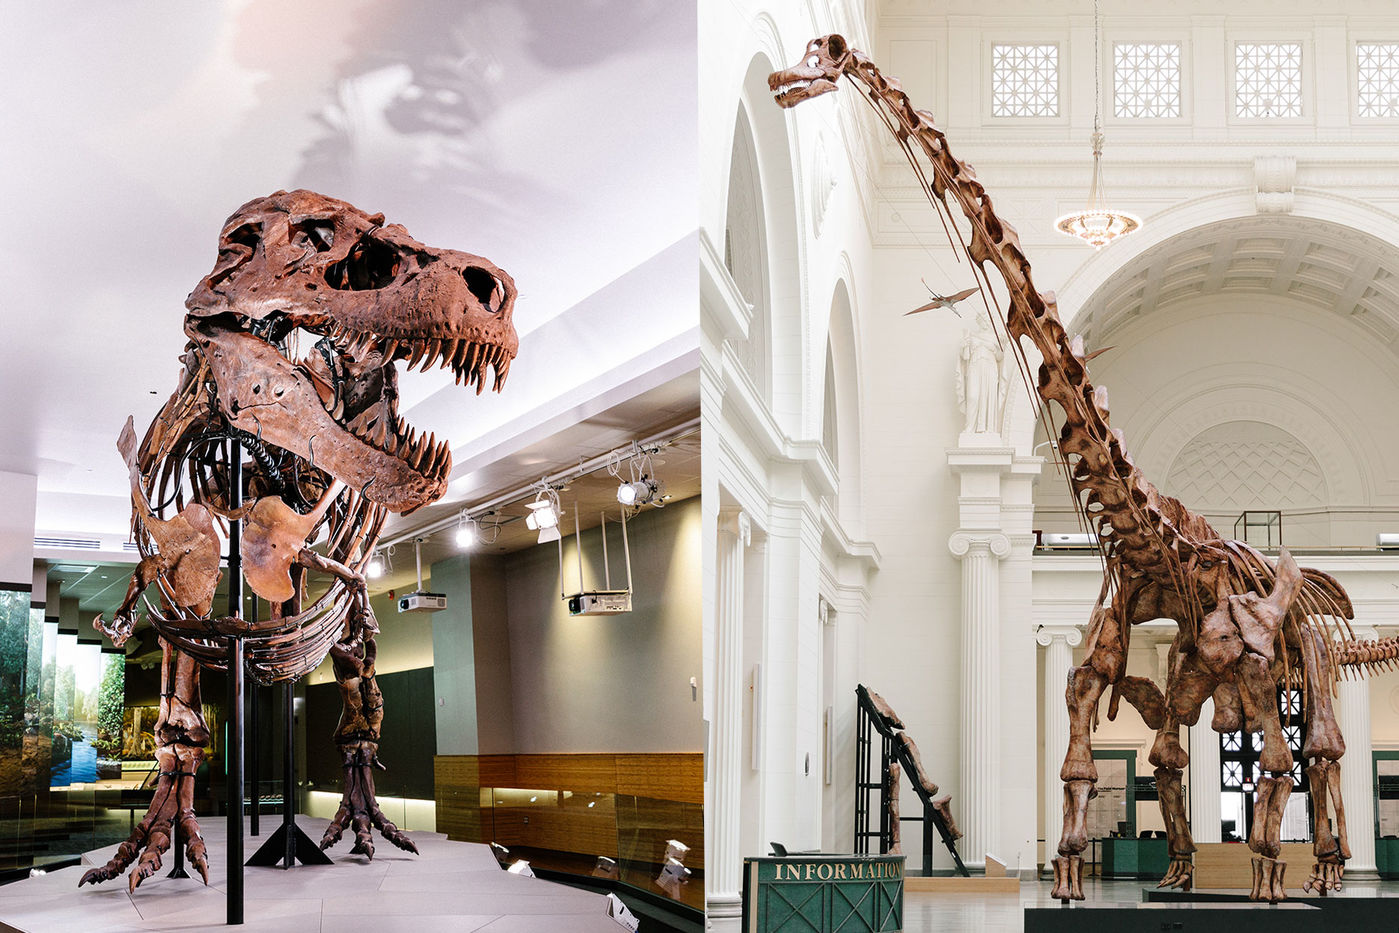 Left: A mounted T. rex skeleton inside a museum gallery. Right: A long-necked titanosaur skeleton in a large classical hall.